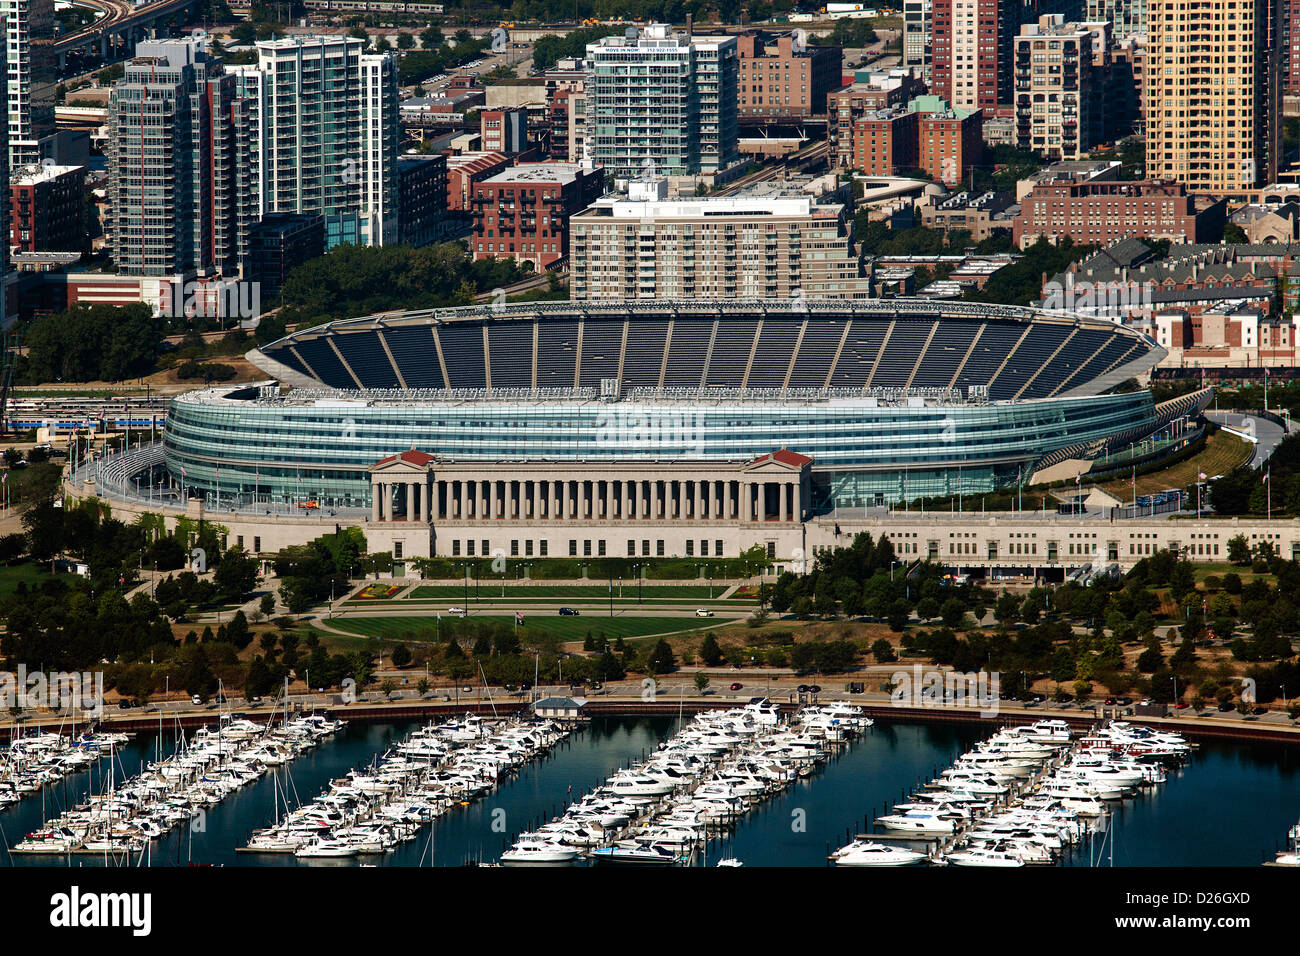 aerial photograph Soldier Field, Chicago, Illinois - Stock Image